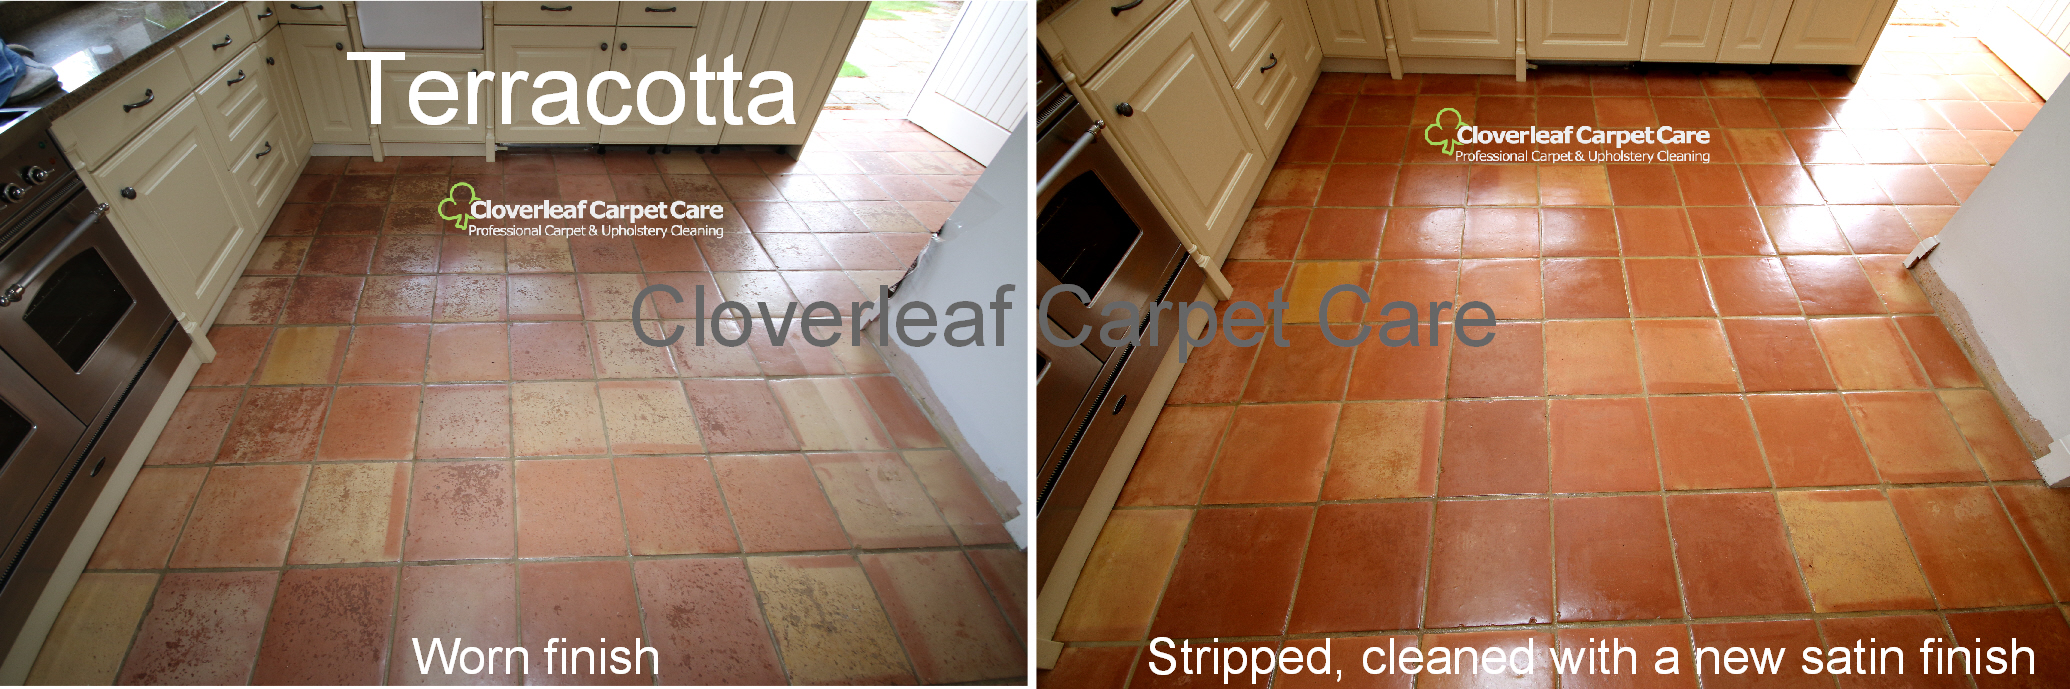 Terracotta-floors-cleaned-sealed-in Cheshire